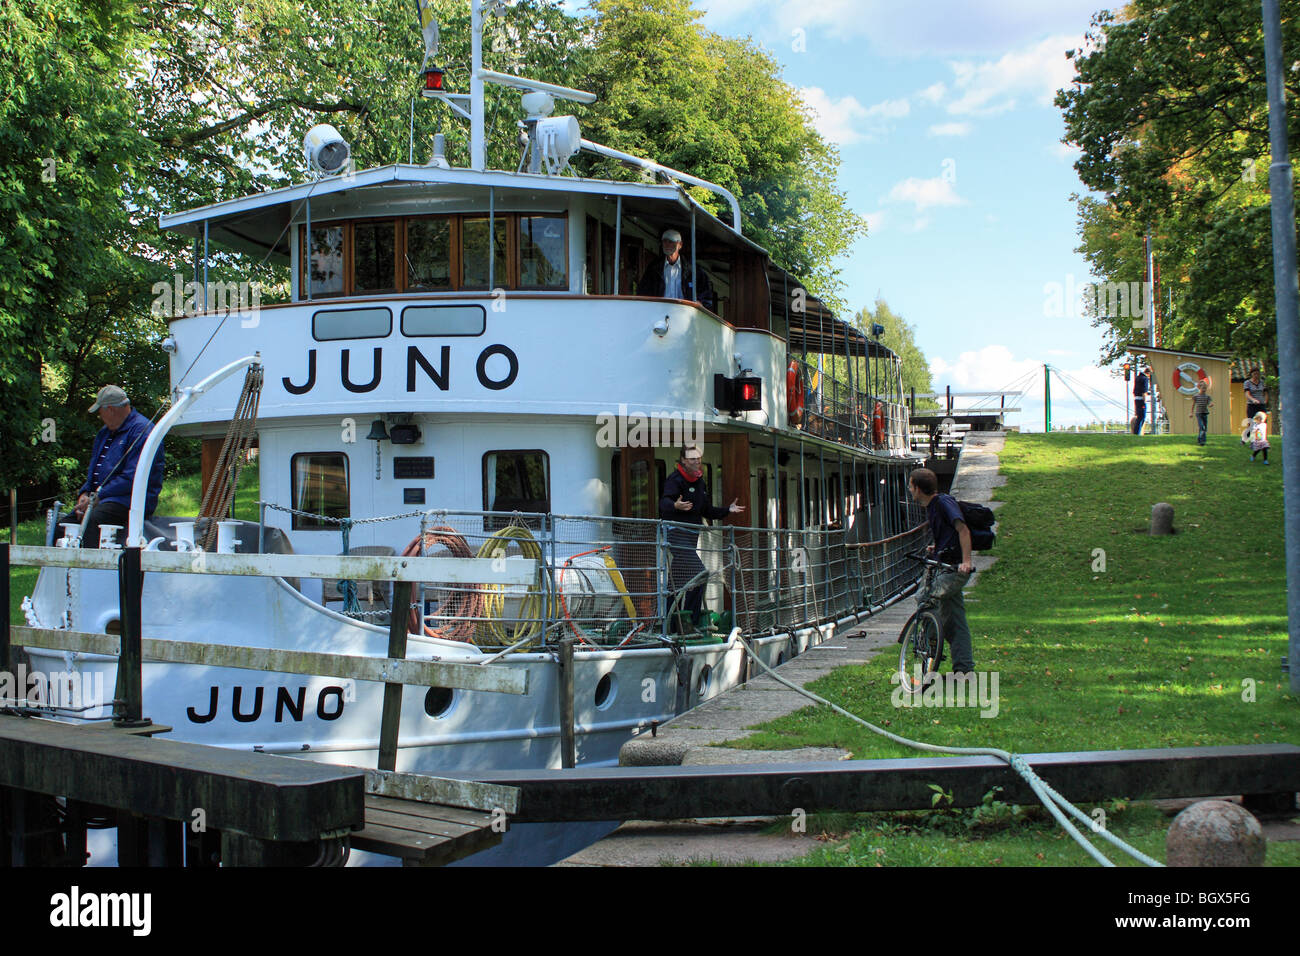 The old passenger ship M/S Juno, IMO 8634132, passing Göta Canal, Sweden. Stock Photo